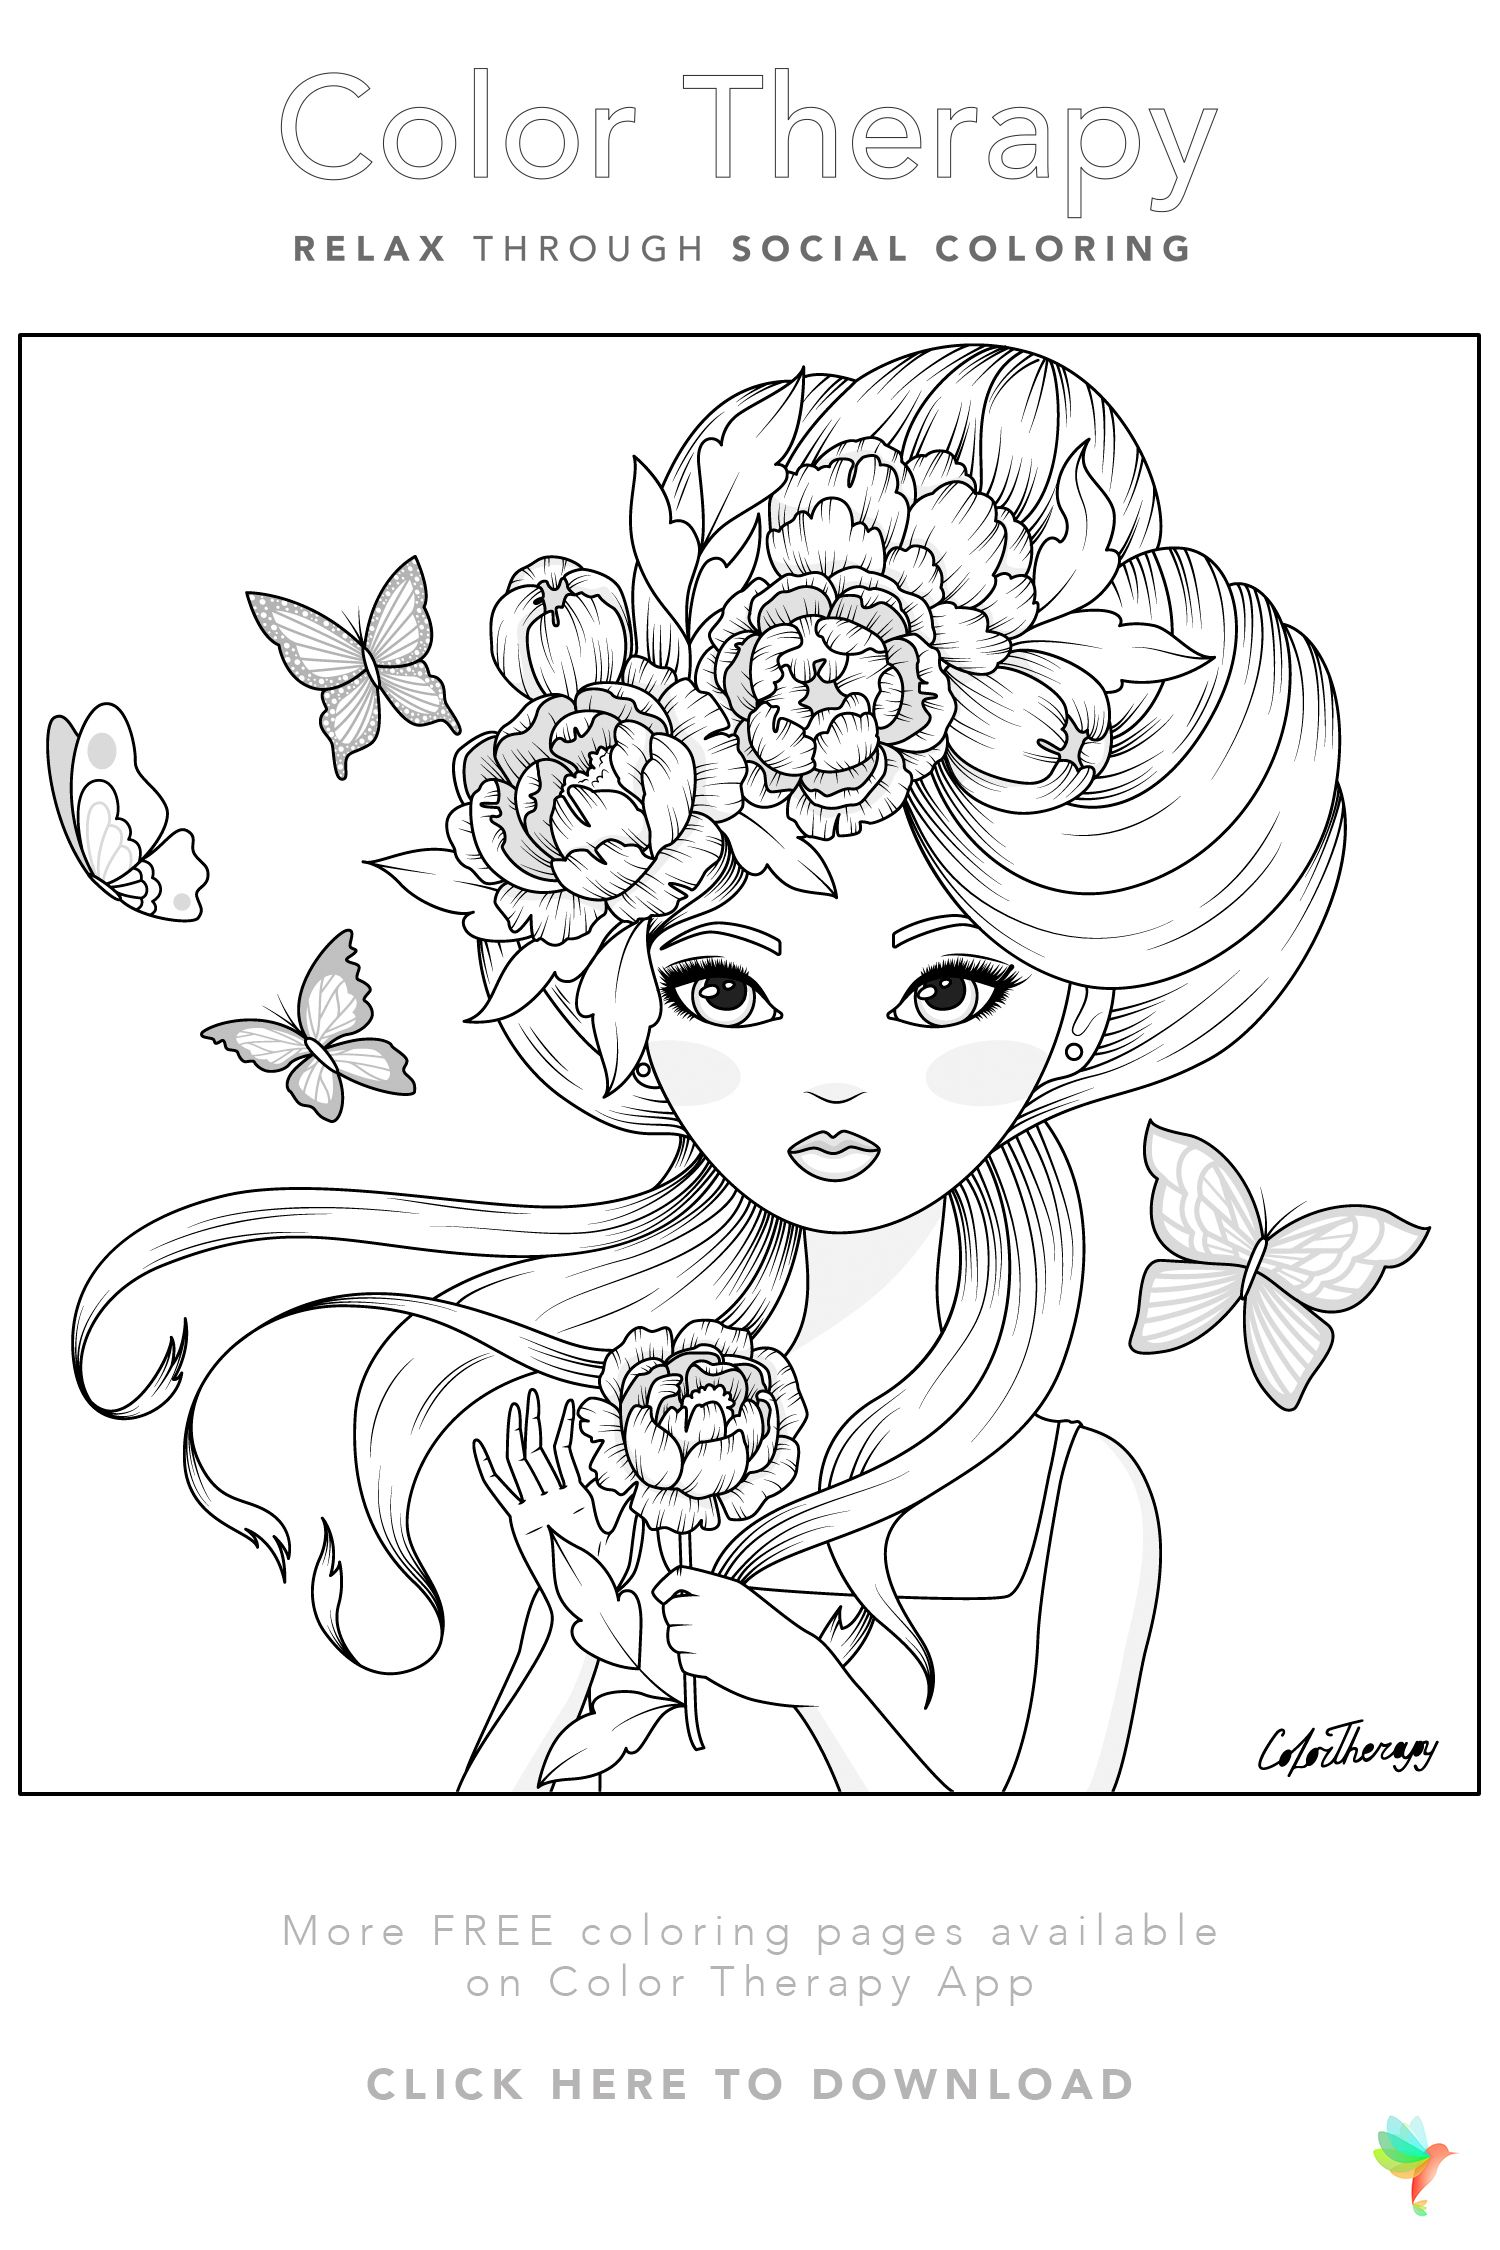 Color Therapy Gift Of The Day Free Coloring Template Moon Coloring Pages Coloring Book Art Coloring Books